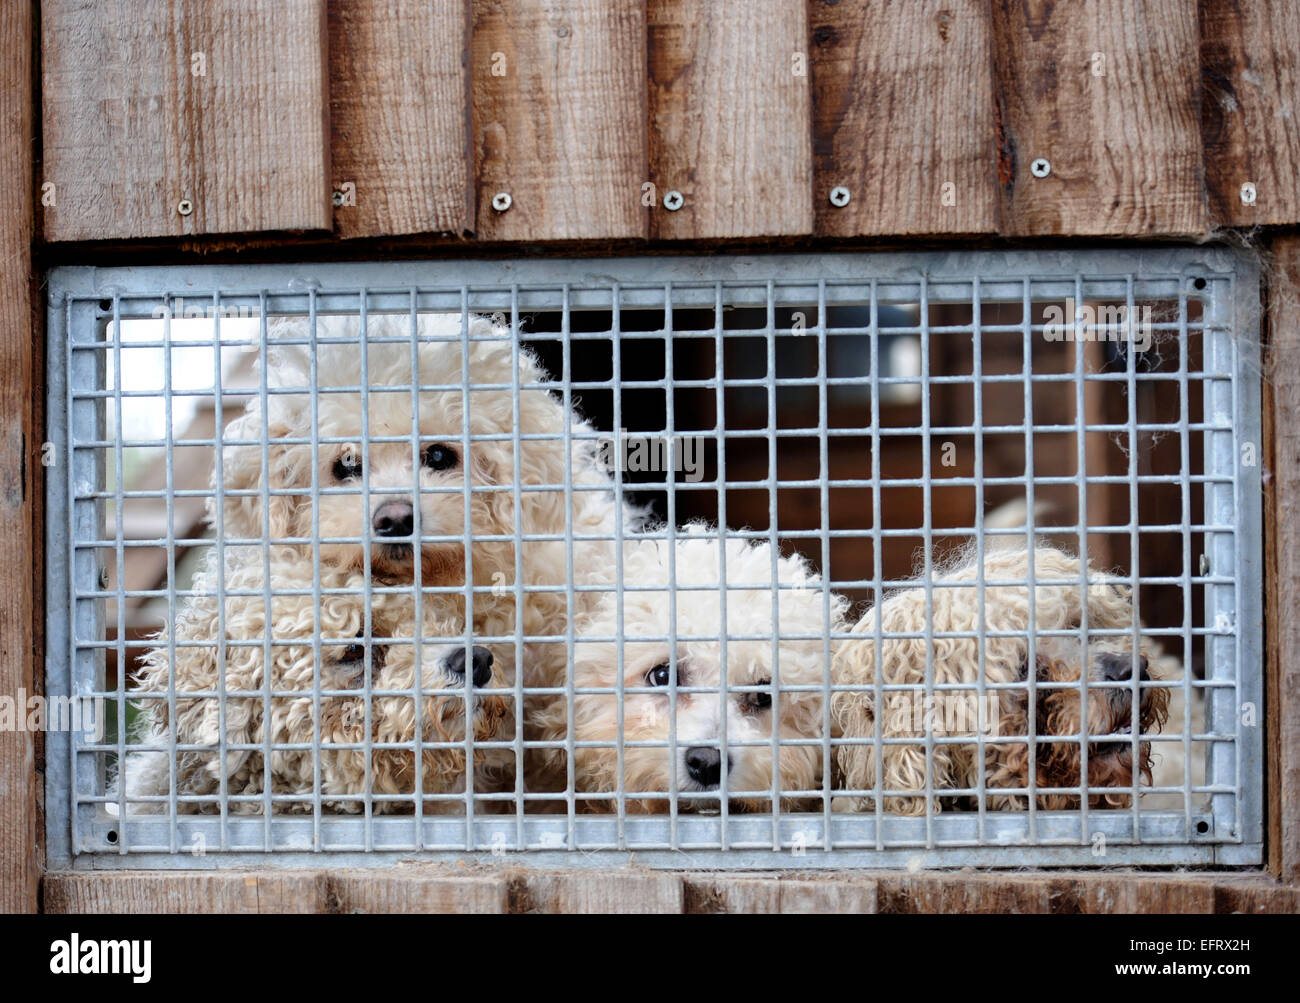 Rescued ex-breeding Bichon dogs at the Many Tears Animal Rescue centre near Llanelli, S. Wales UK - Stock Image